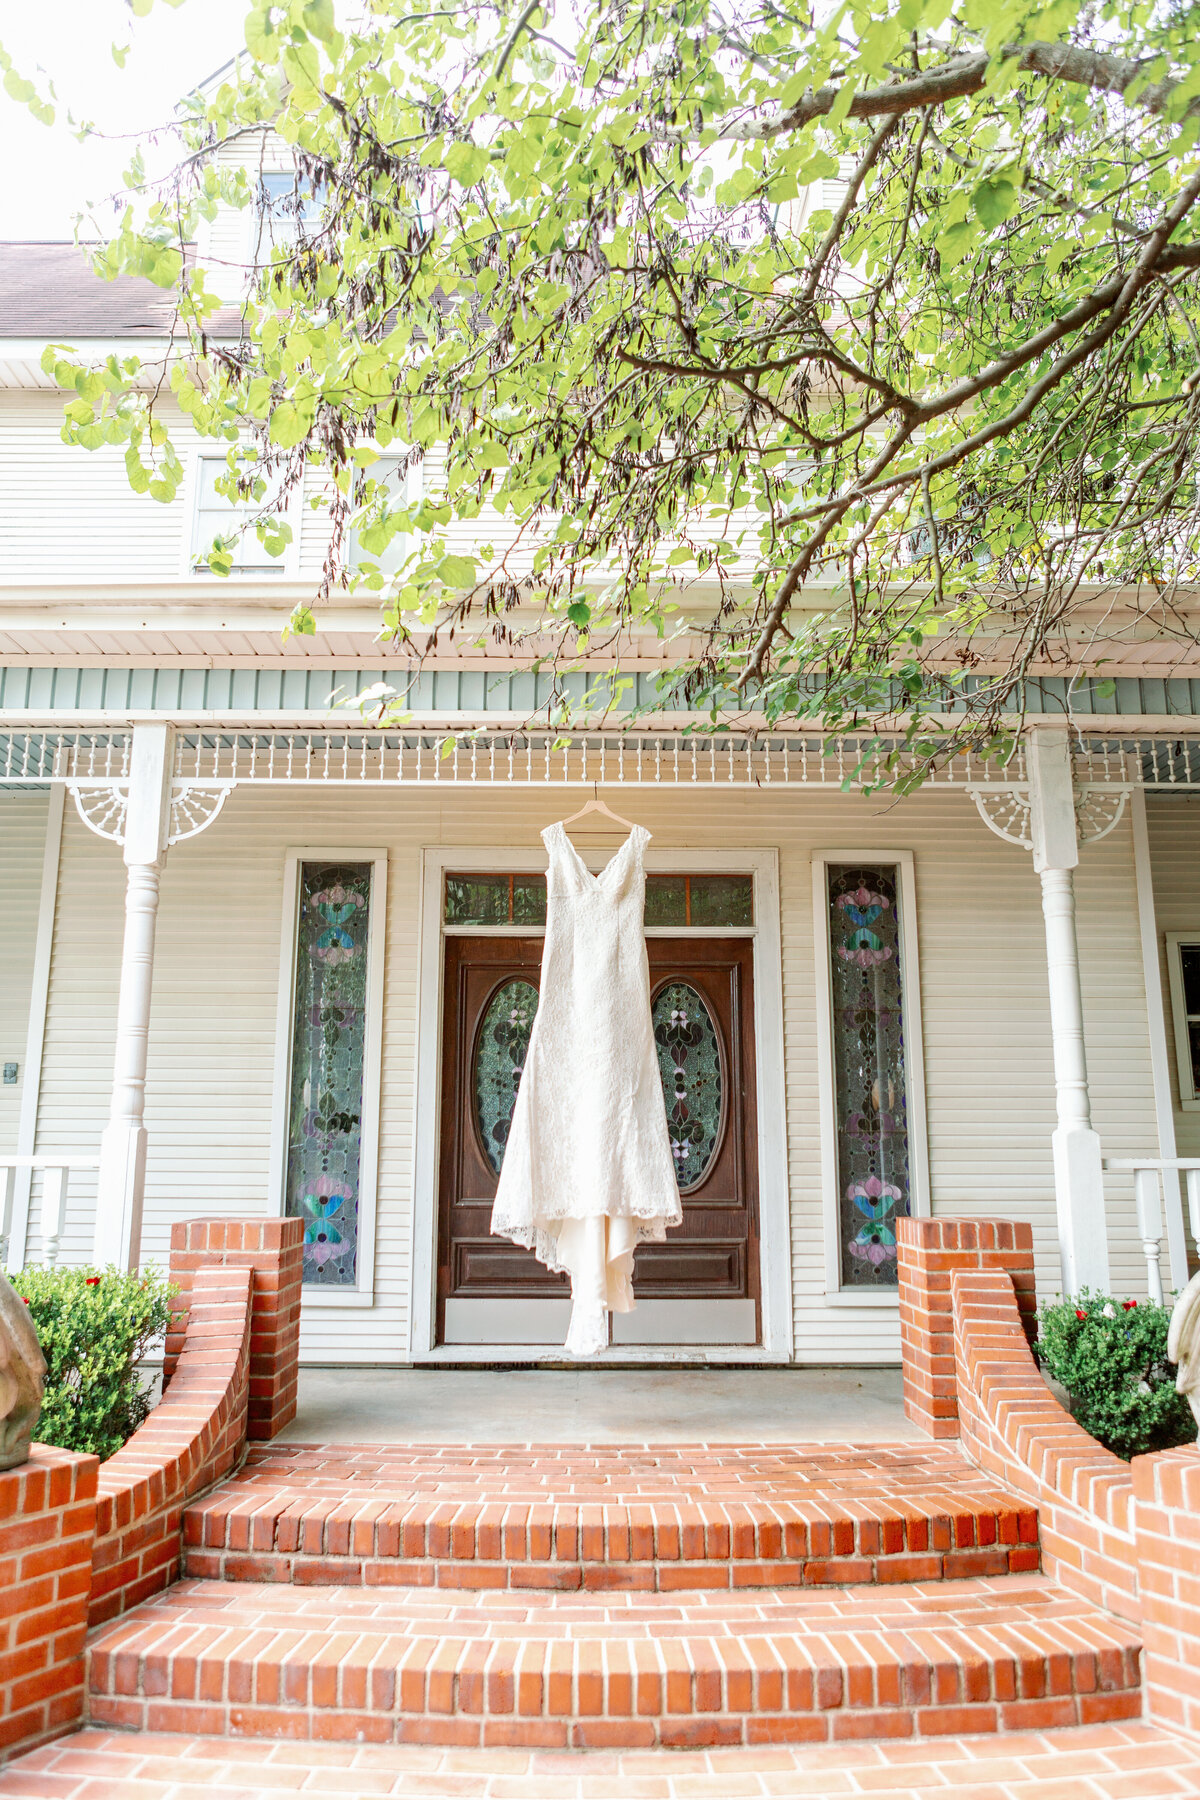 Wedding Gown Hanging in Front of Southern Home